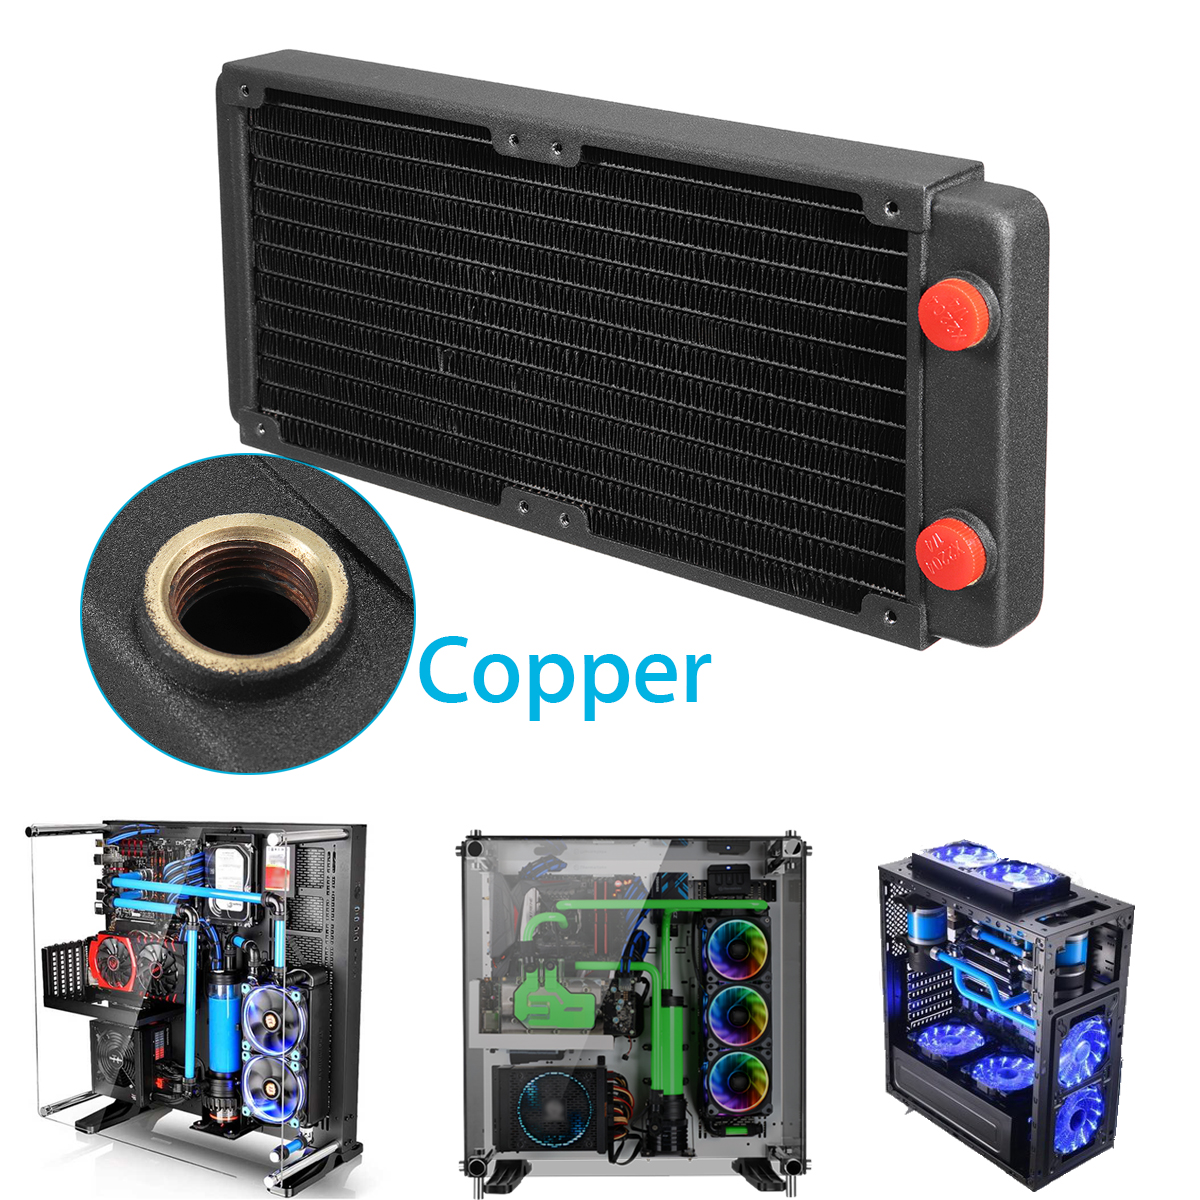 LEORY 240mm Computer CPU Water Cooling Cooler Radiator Heatsink Copper Radiator Exhaust Heat Exchanger Water Cooling Cooler magicool 140 ex slim 140mm copper radiator water cooler double fins coolgate hd